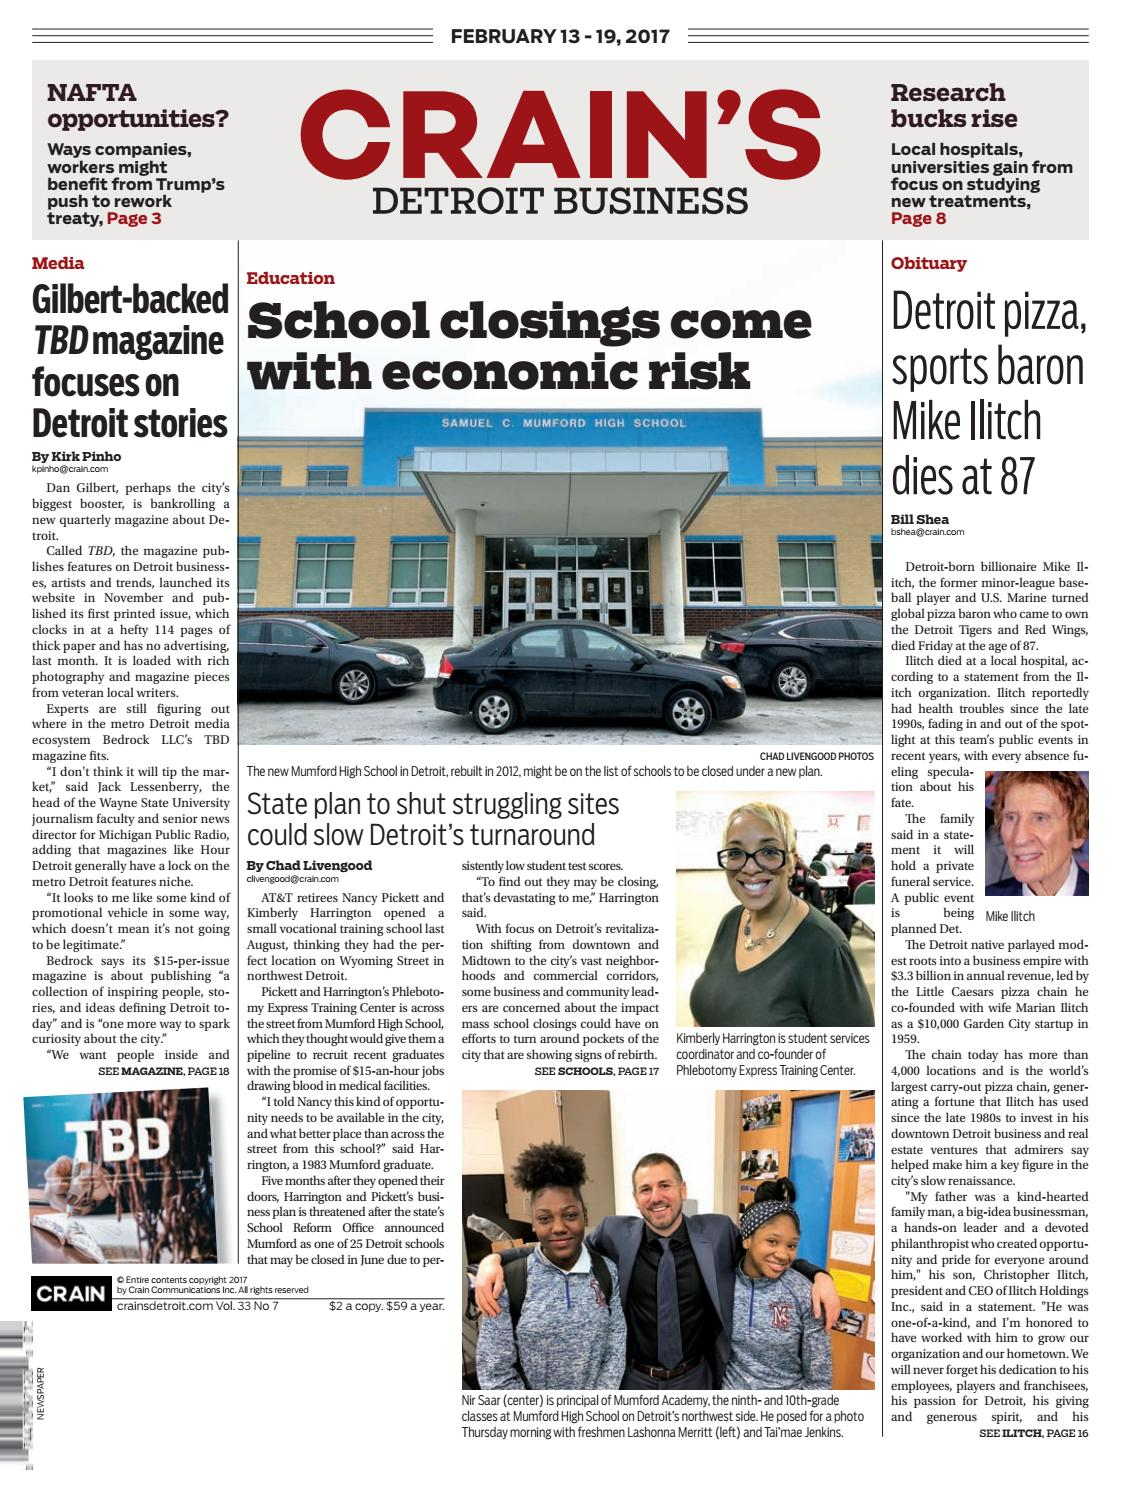 crain s detroit business feb issue by crain s detroit crain s detroit business feb 13 2017 issue by crain s detroit business issuu